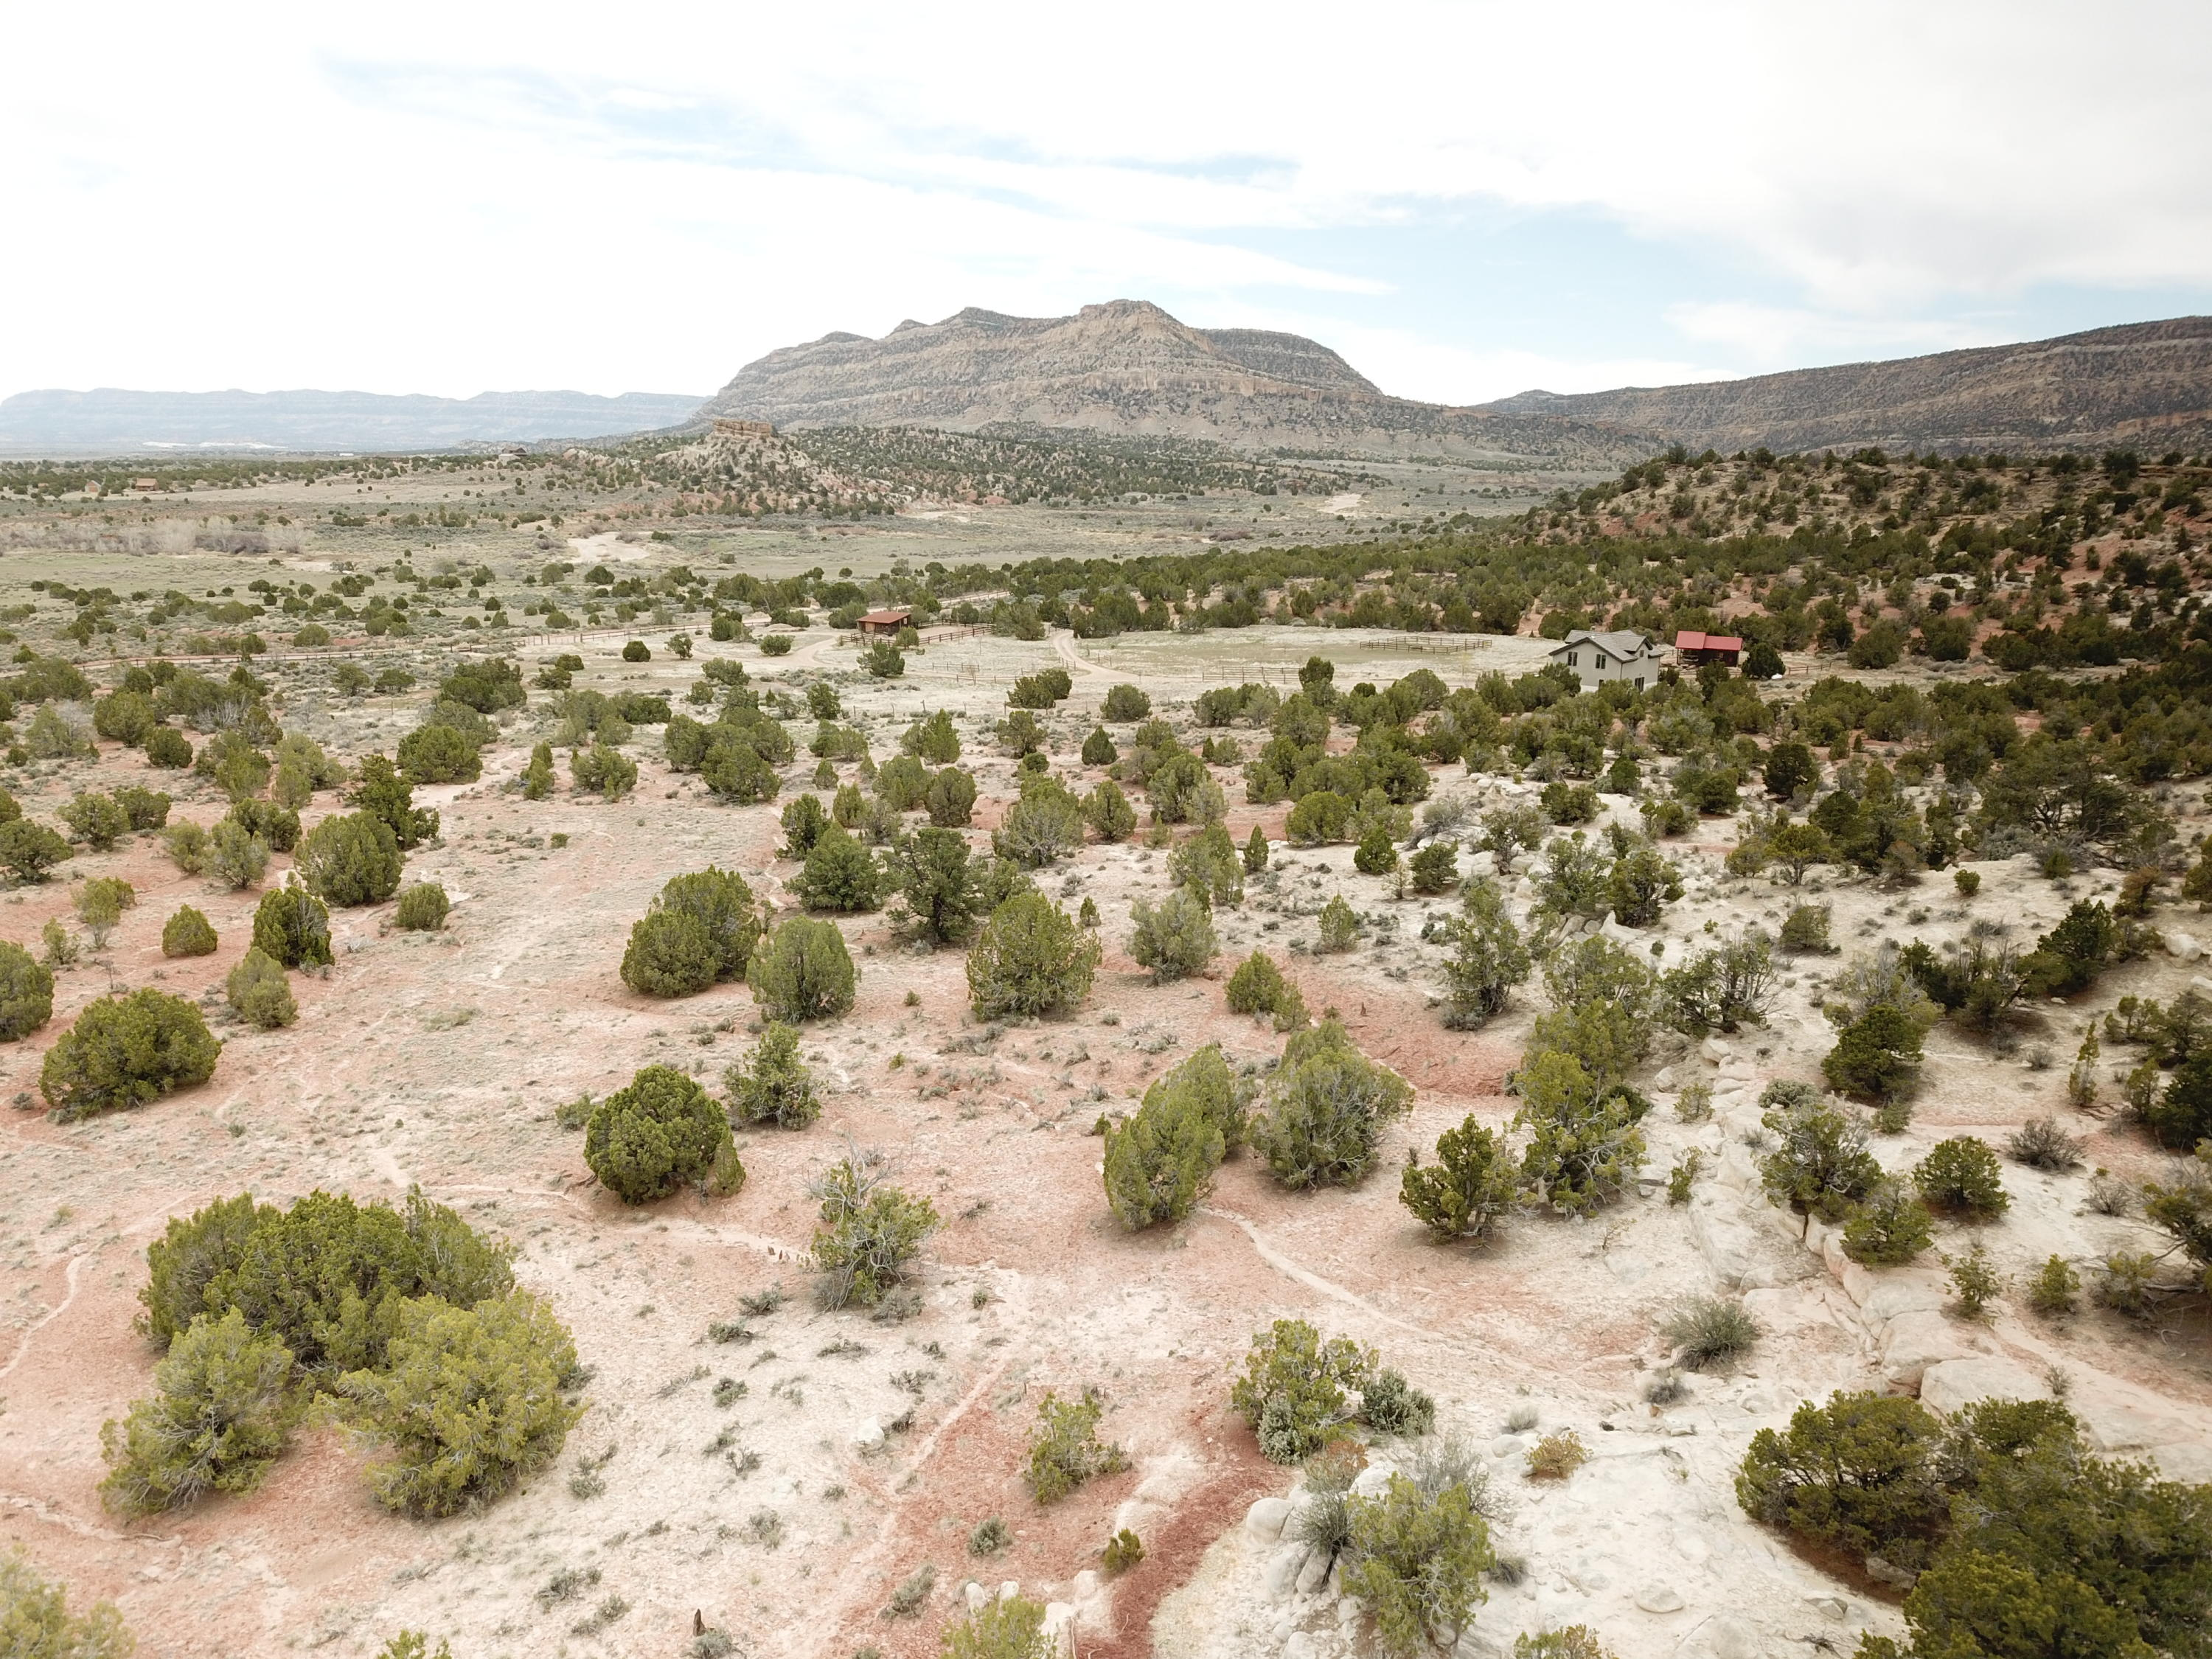 Looking to find a somewhat secluded piece of land, located in the town of Escalante, yet less than 1.5 miles from Main St. - Great 2 + acres located at the base of a hill, with a spectacular sunrise! A perfect piece of land that makes you feel remote, but close to amenities...restaurants, grocery stores and local pub. Easement and road being put in from Smokey Mtn Rd.  Backs to Public Lands!